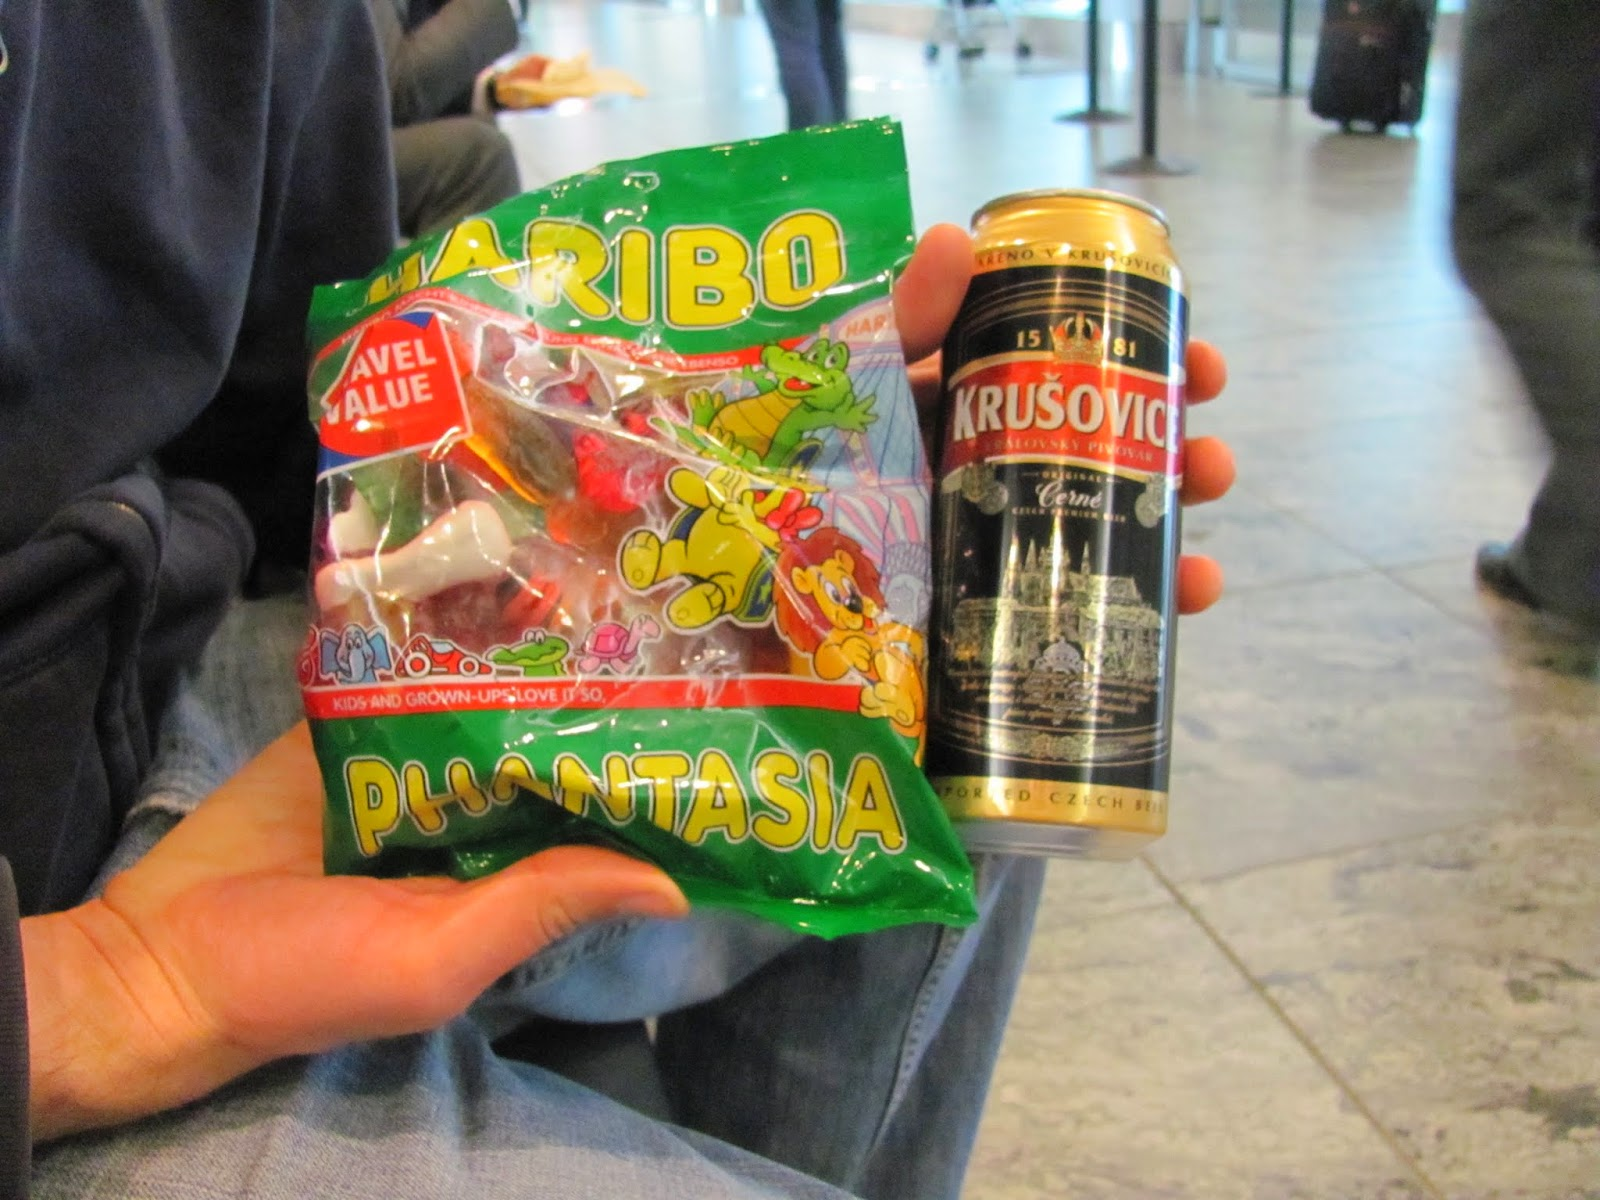 Gummi Candy and Krusovice Beer